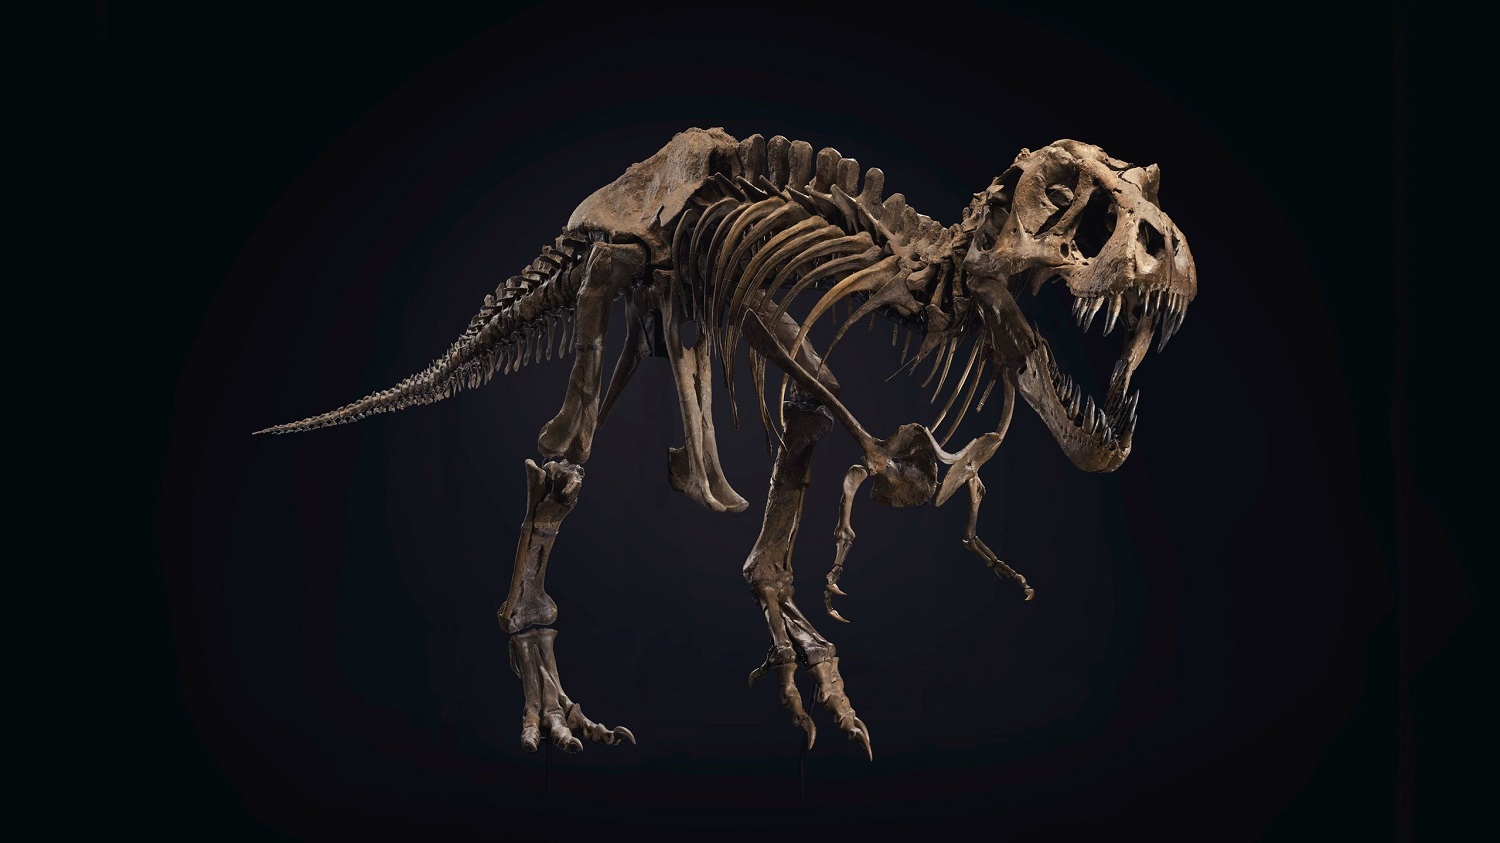 One Of The Largest Most Complete T-Rex Skeleton Up For Sale